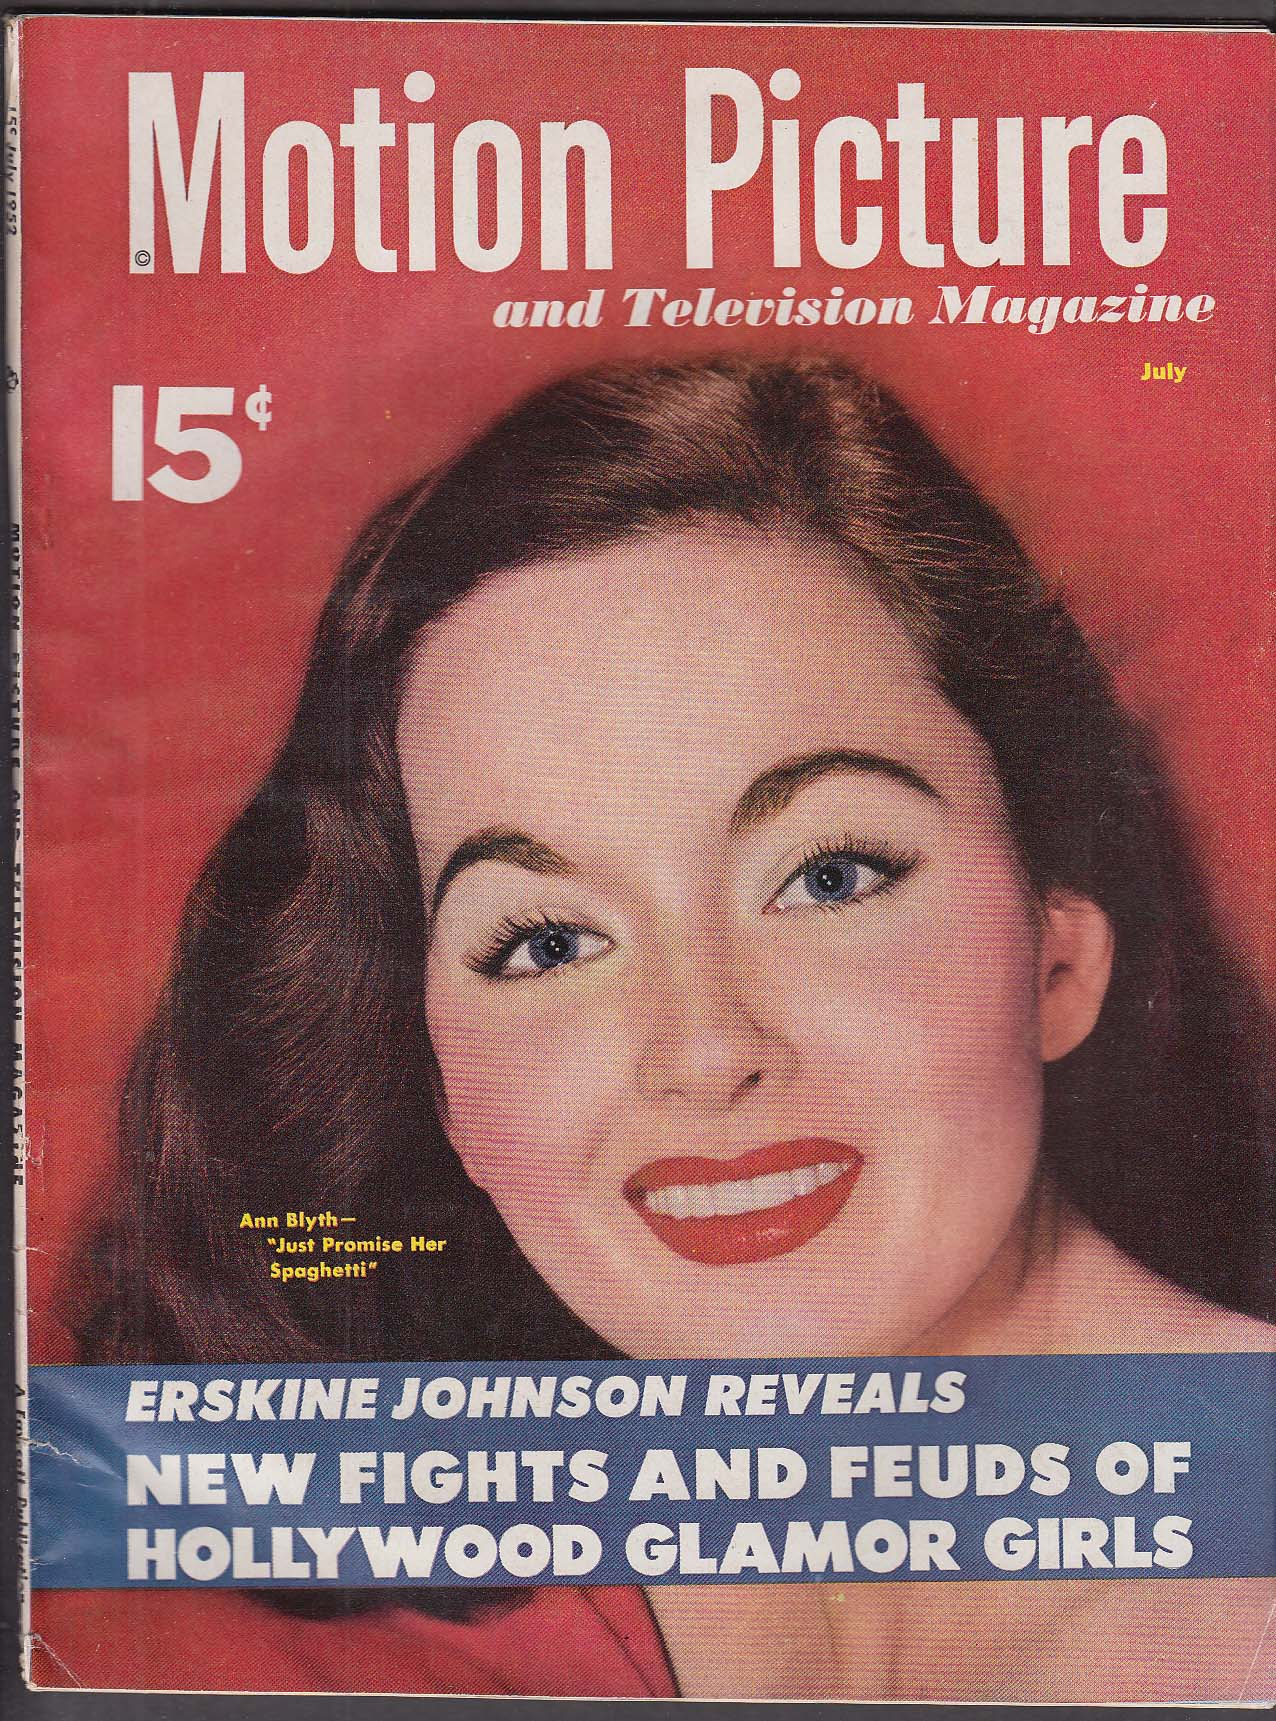 MOTION PICTURE Ann Blyth Erskine Johnson Marlon Brando ++ 7 1952